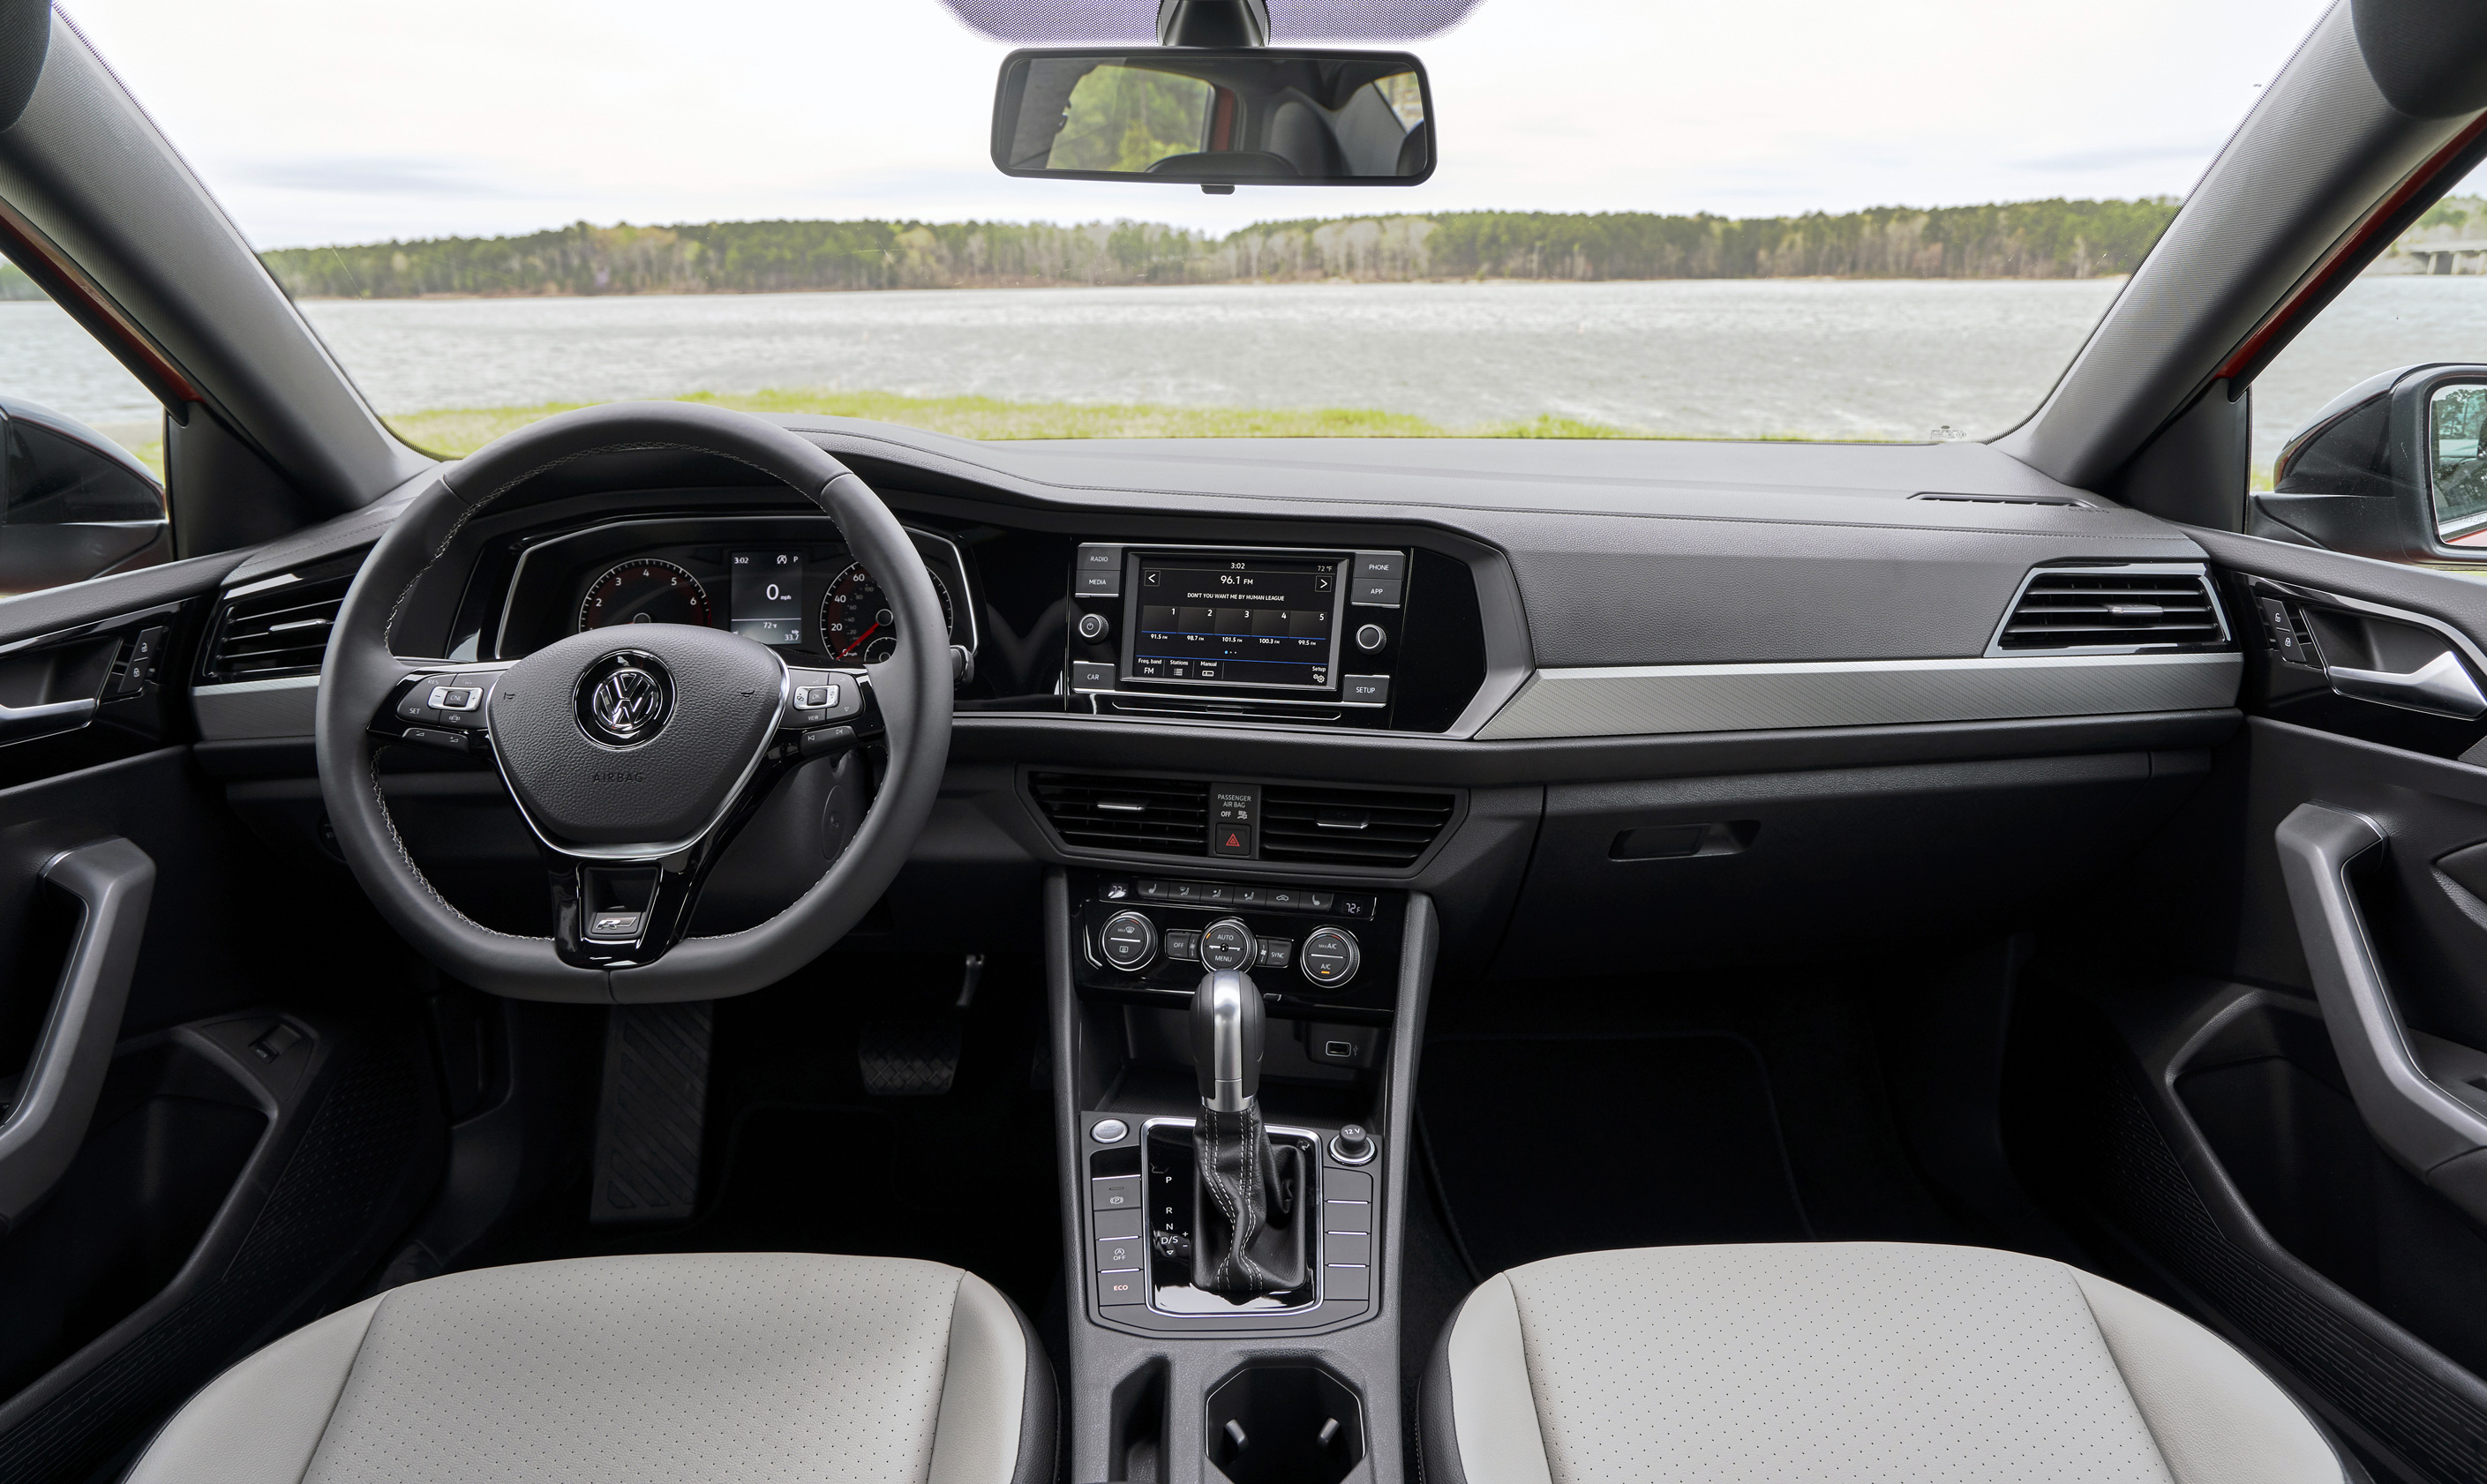 ca drive vw interior first wheels volkswagen reviews jetta car